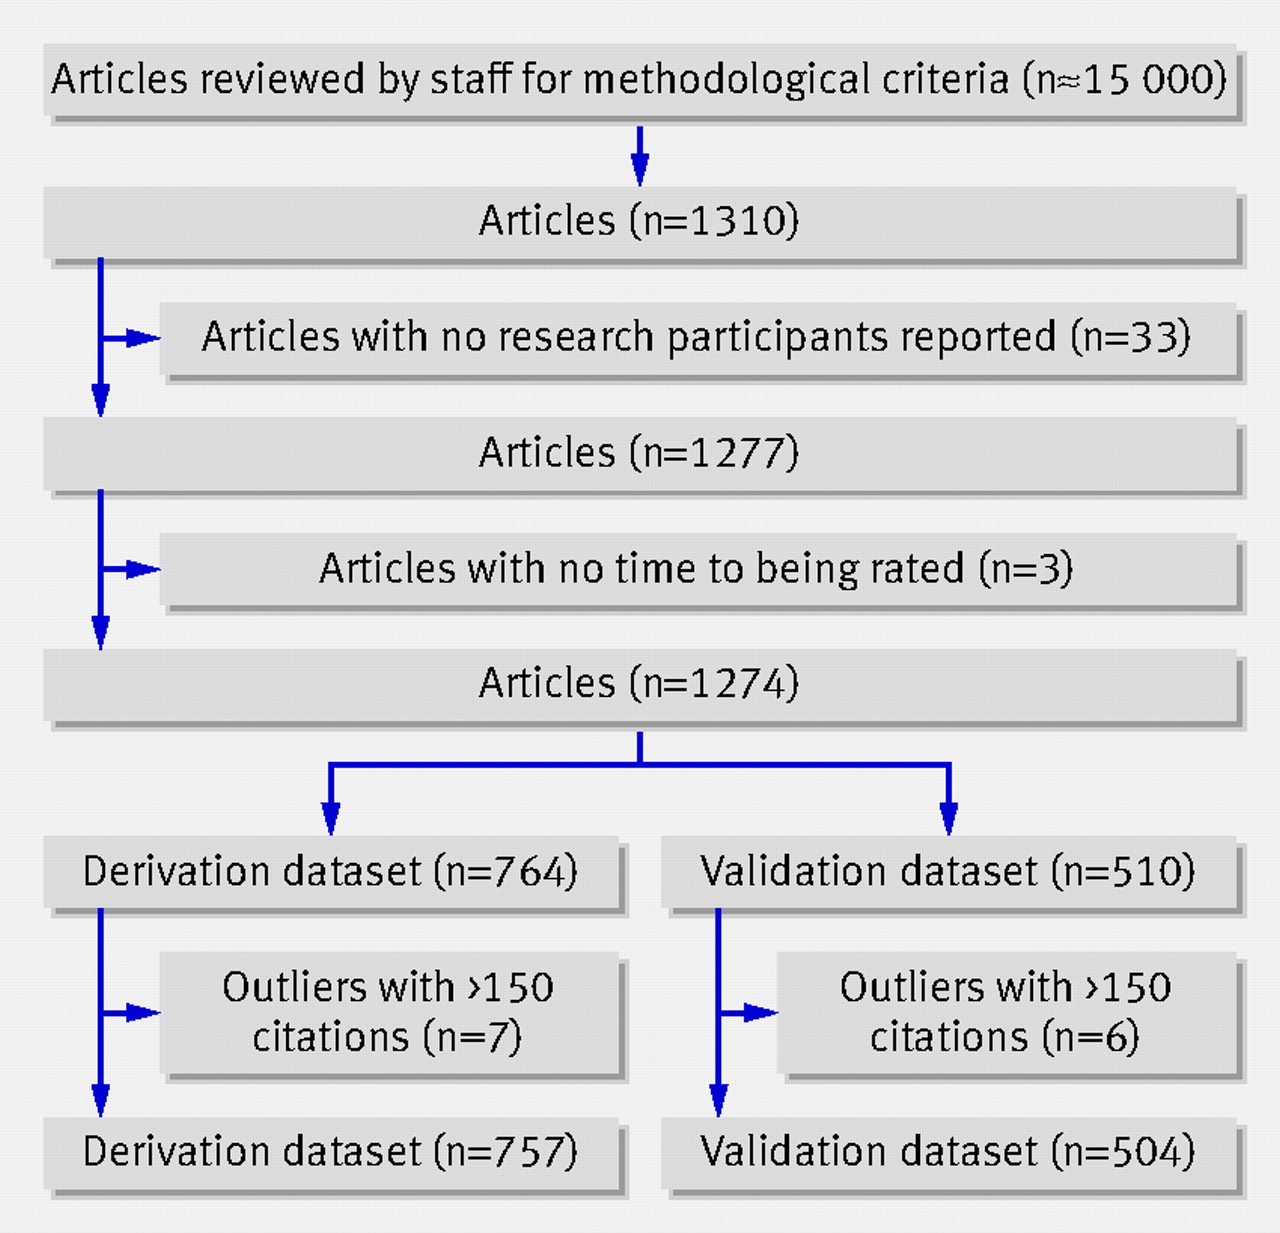 prediction of citation counts for clinical articles at two years